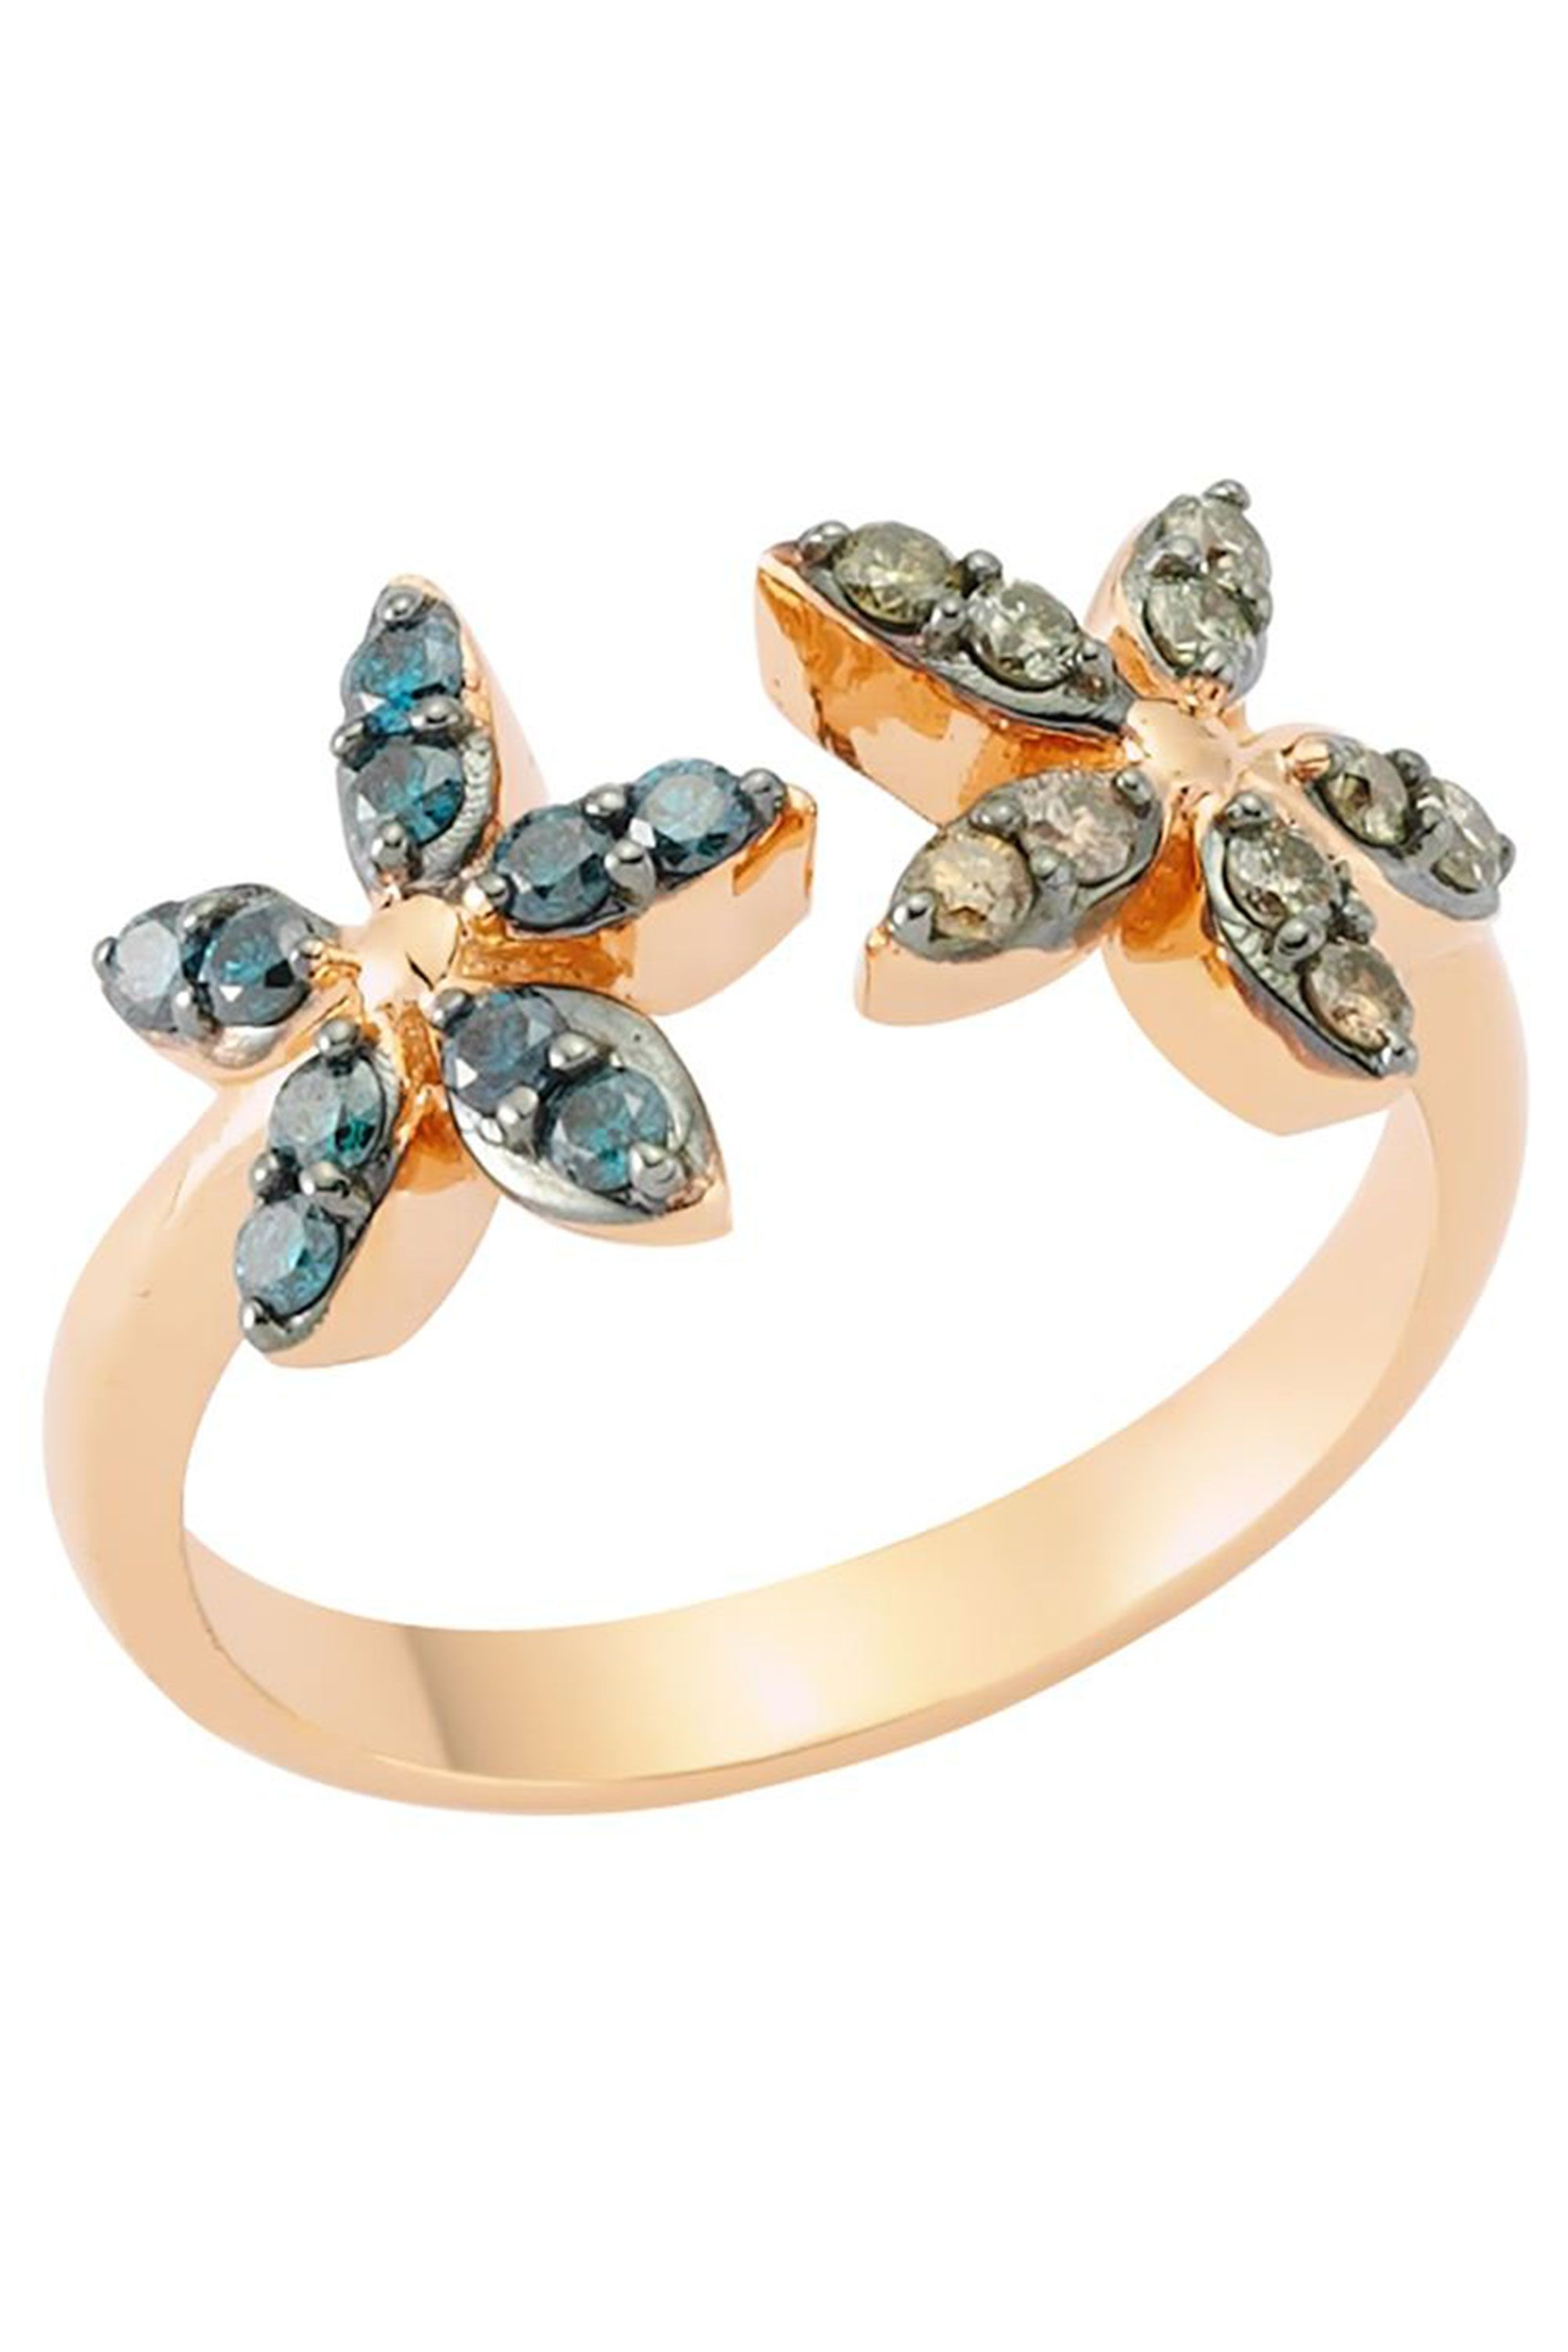 features kay ishtar rings gold an femininity and amazing rose jewelers love divine goddess engagement unique of